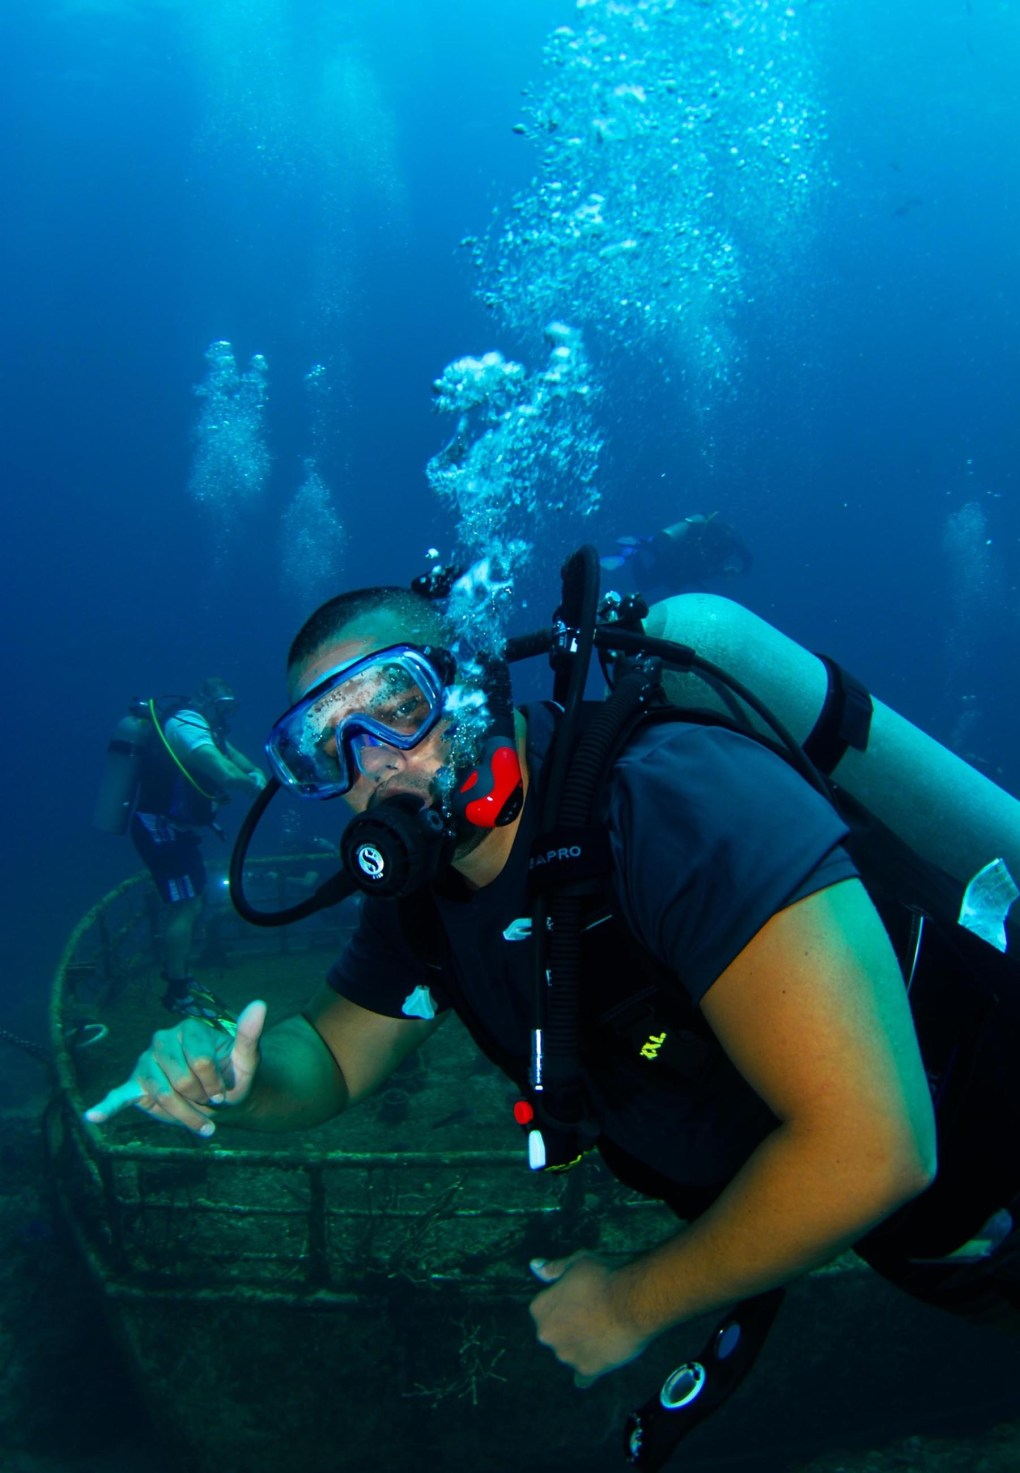 Scuba exploration with Undersea Expeditions, and LGBTQ travel company out of Hawaii.